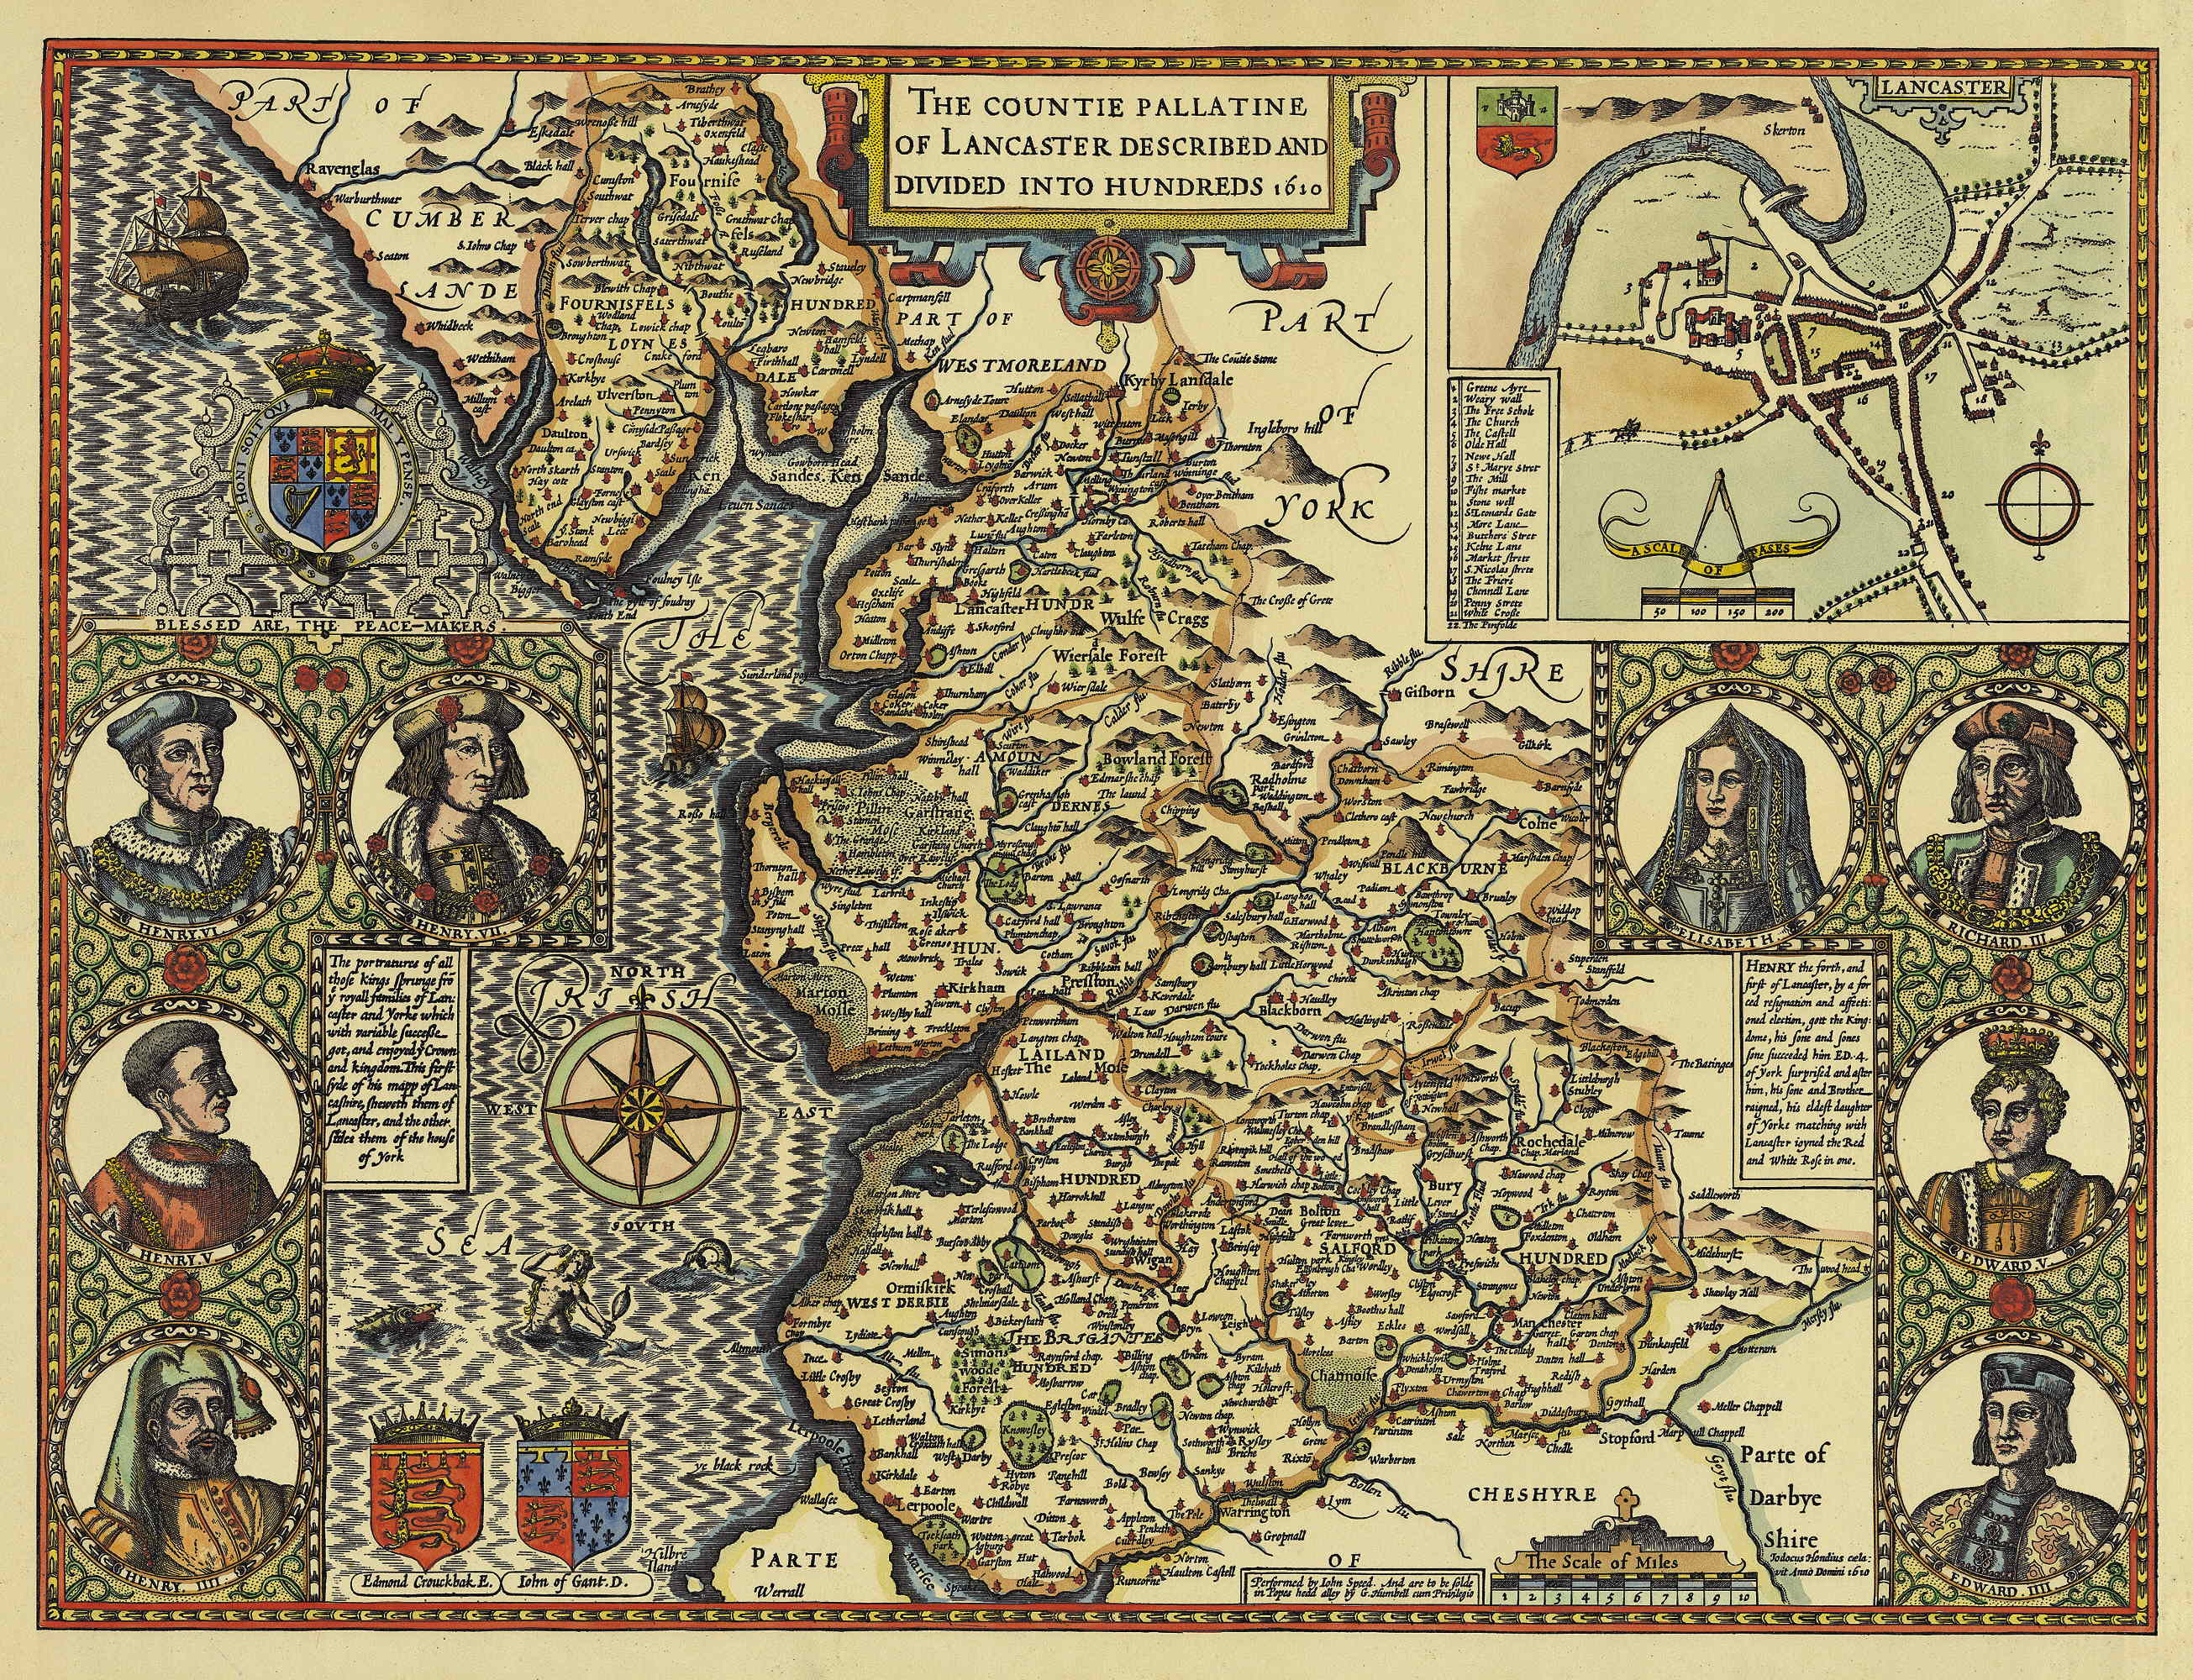 Map Of England Lancaster.Map Of The County Palatine Of Lancaster England